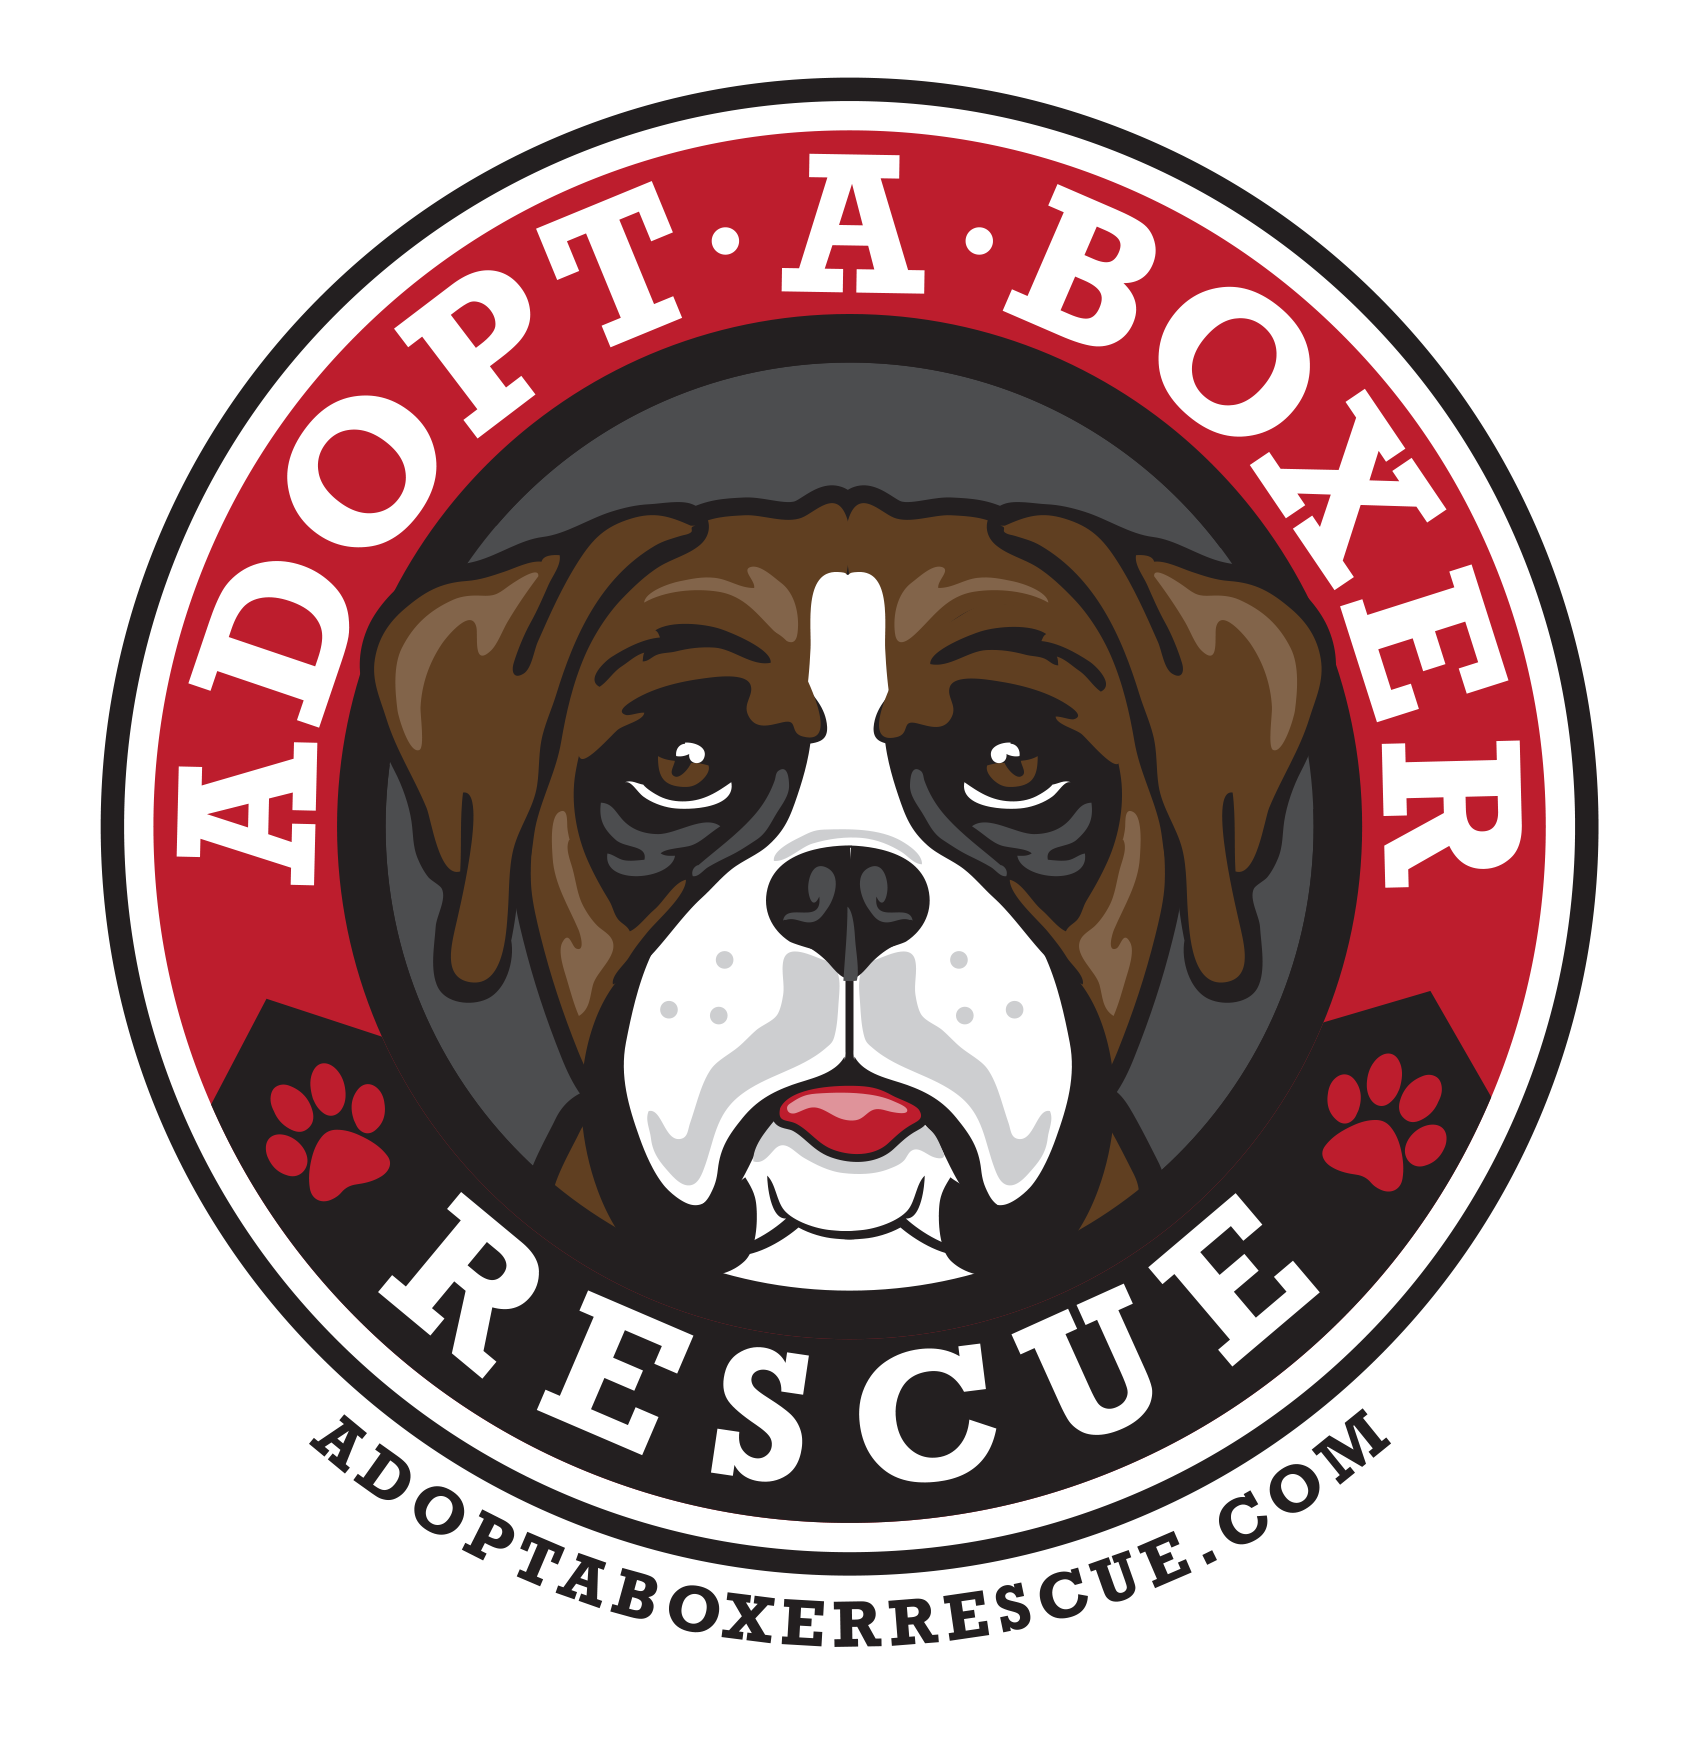 Adpot A Boxer Rescue - Partner Dates: Nov 1-2Adopt A Boxer Rescue is an all-volunteer 501(c)(3) charitable organization formed to rescue, rehabilitate, and re-home unwanted and abandoned boxer dogs. We work within Connecticut, Delaware, Maryland, Massachusetts, New Jersey, New York, Pennsylvania, northern Virginia, Washington DC and Rhode Island.When boxers are in need, AABR volunteers respond. Our mission includes hands-on rescue, as well as education. We strive to inform others about the realities of pet ownership, promote neutering, and encourage responsible care. It is our hope that our efforts will enhance the lives of people as well as companion animals. Join us. Help us to help boxers.AABR is a collective effort of volunteers working together, pooling resources and sharing goals.https://www.adoptaboxerrescue.com